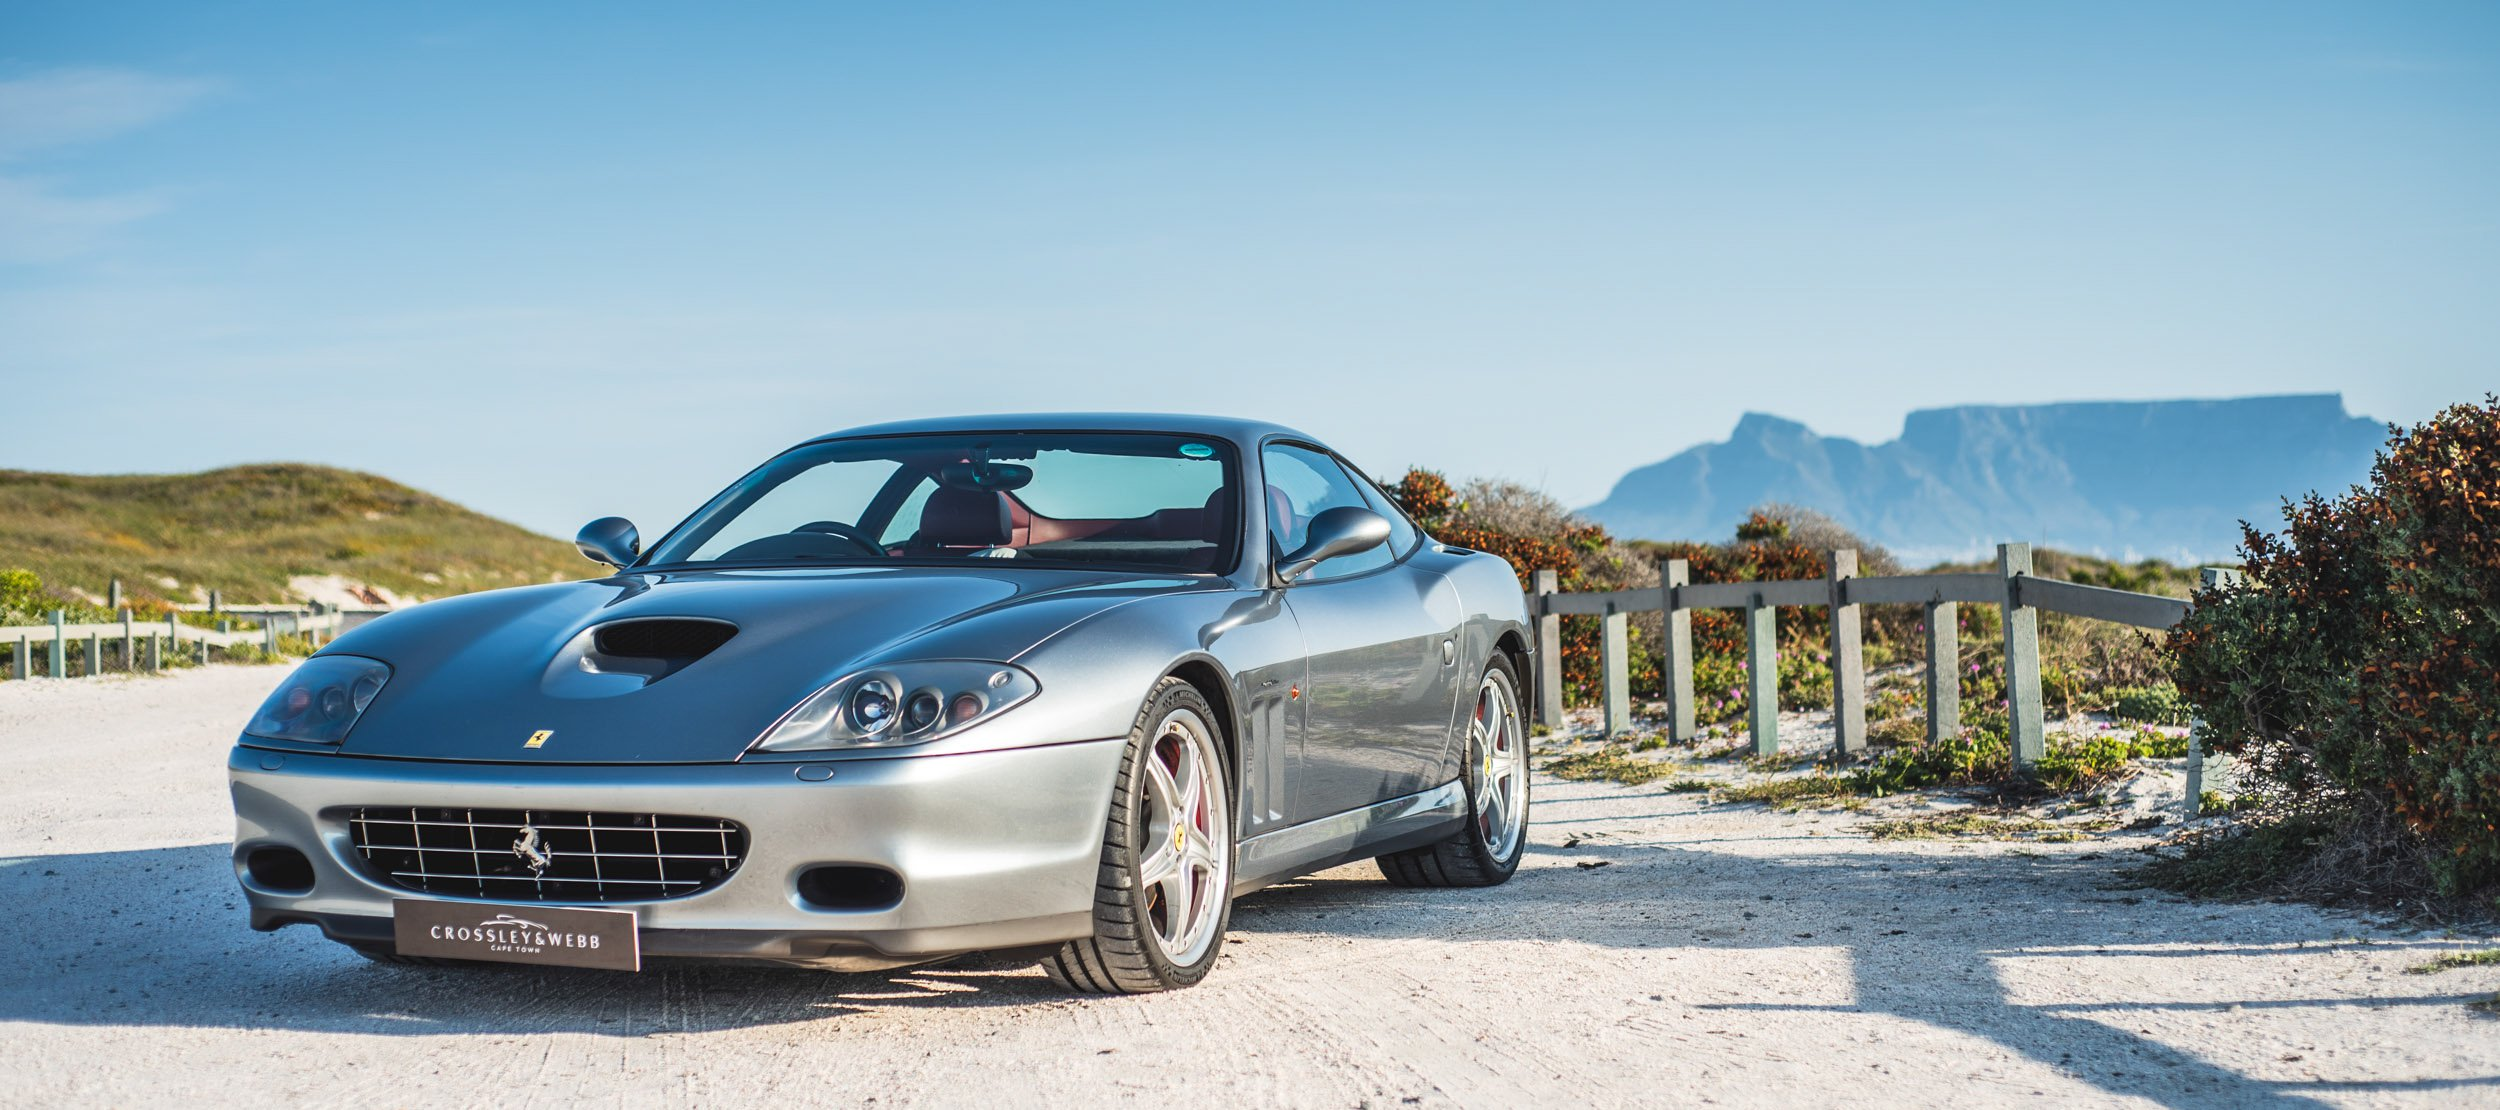 Ferrari 575M - 6 speed manual